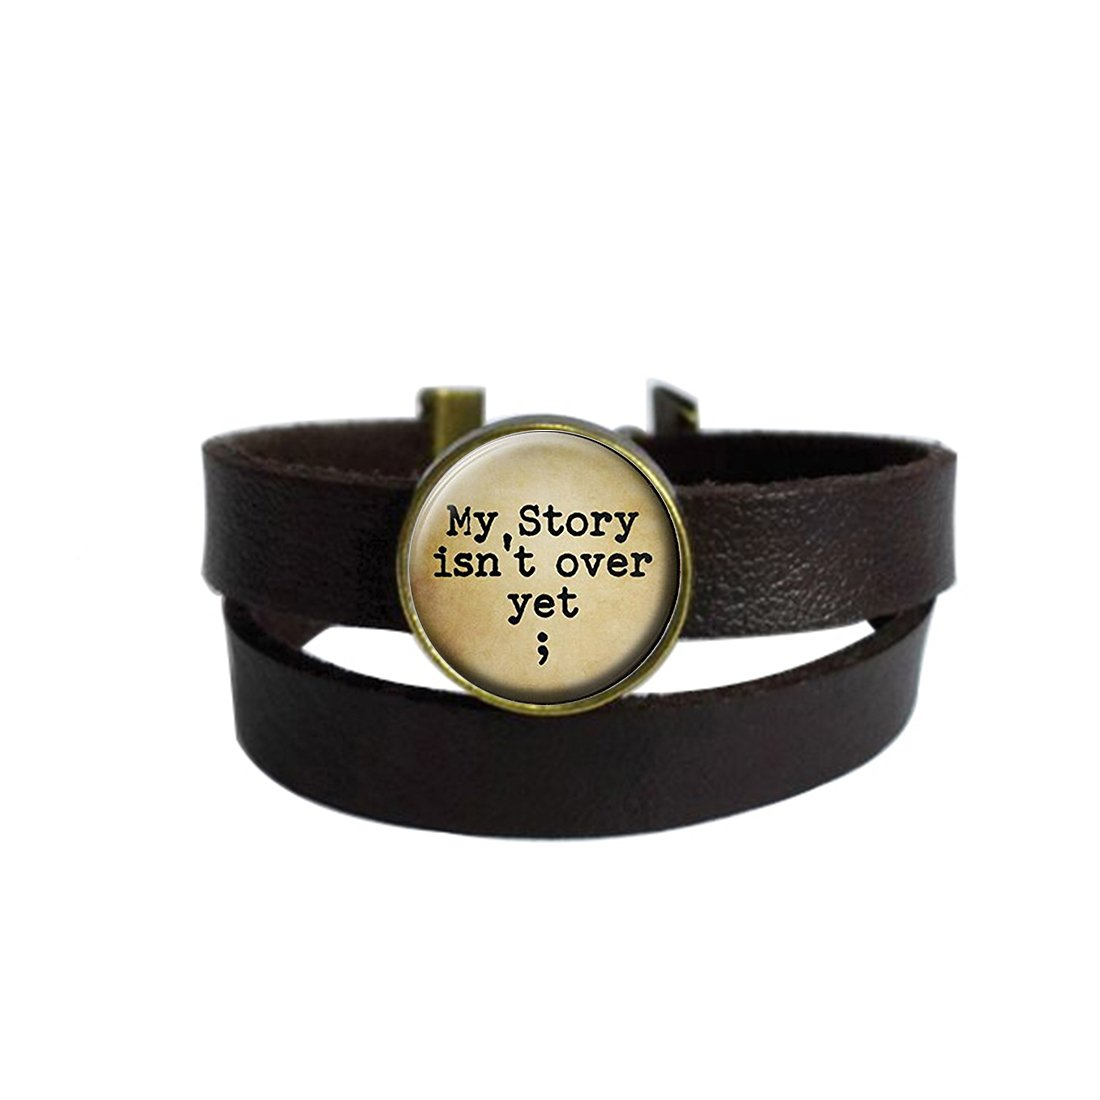 Two Layers Design Dark Brown Leather Cuff Bangle New Fashion My story isn't over yet Retro Rope Wristband Bracelet with Glass Pendant